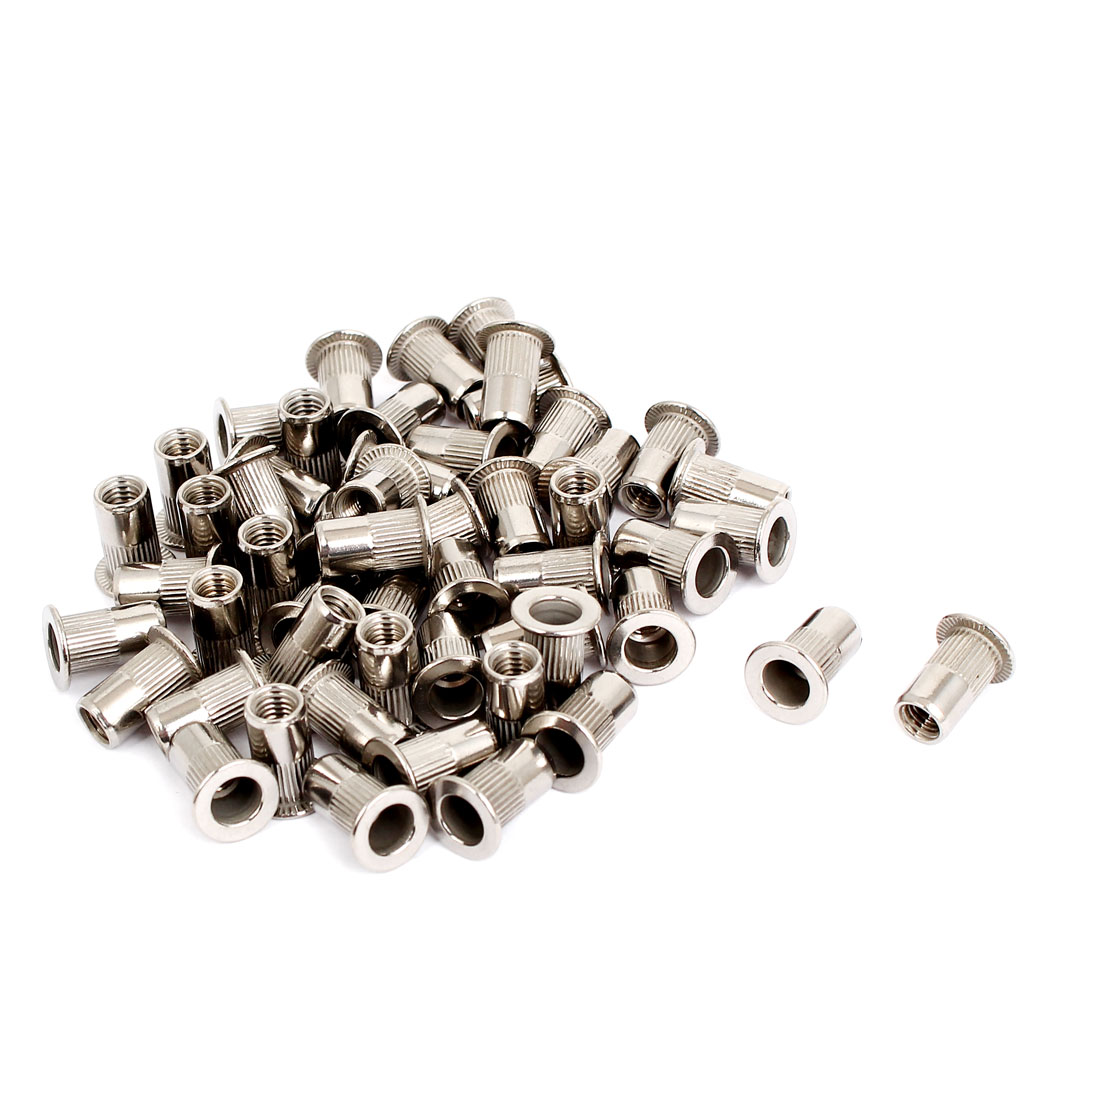 M5 Thread 304 Stainless Steel Rivet Nut Insert Nutsert 50pcs